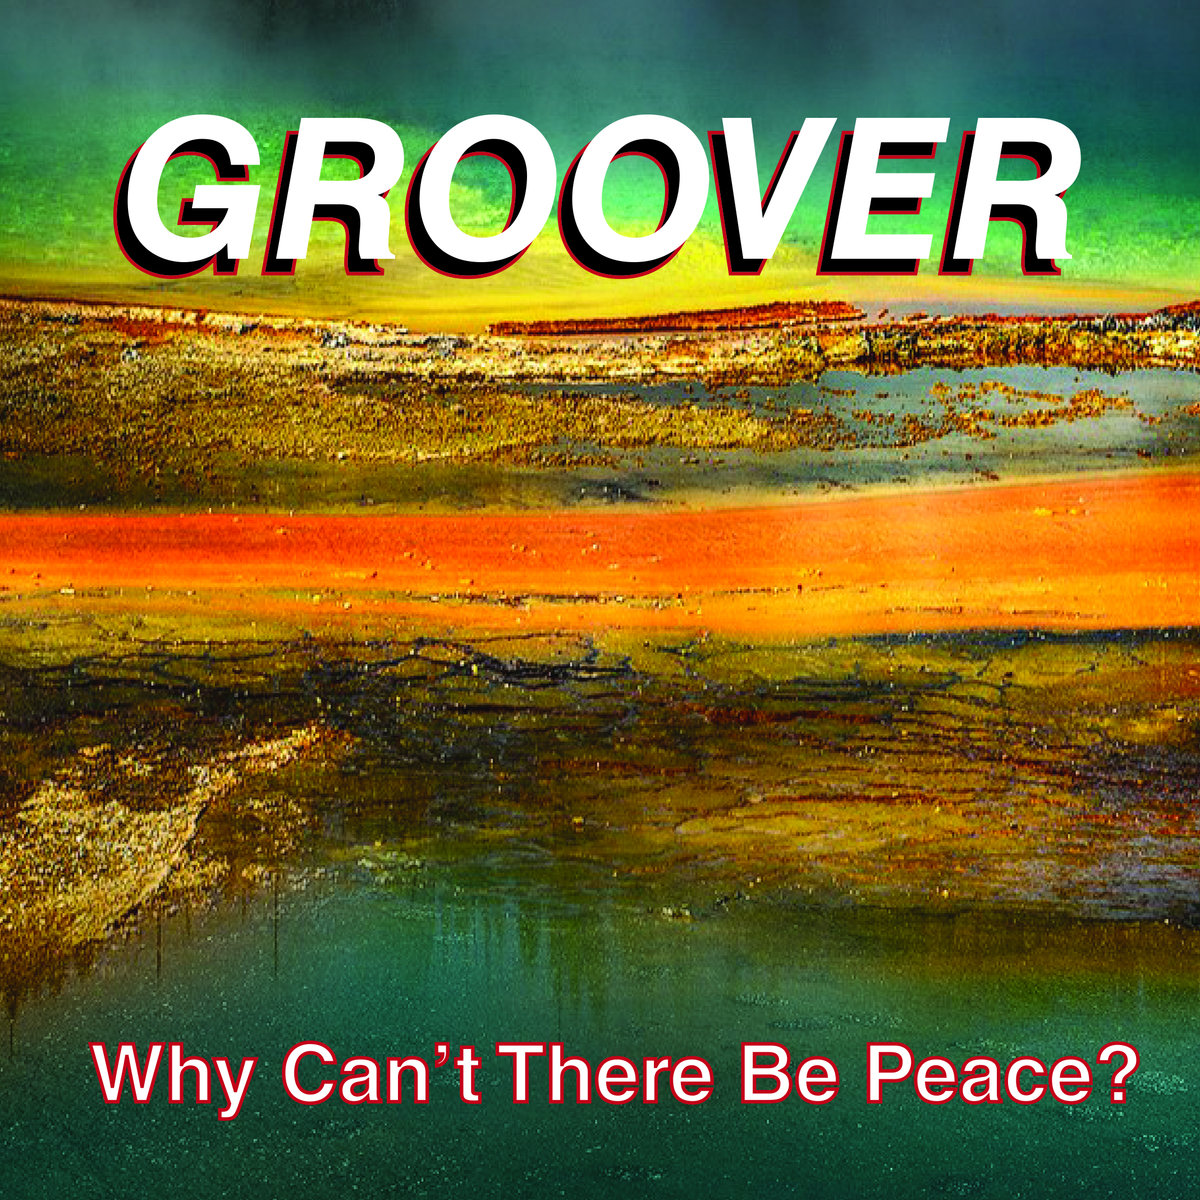 Groover - Why Can't There Be Peace